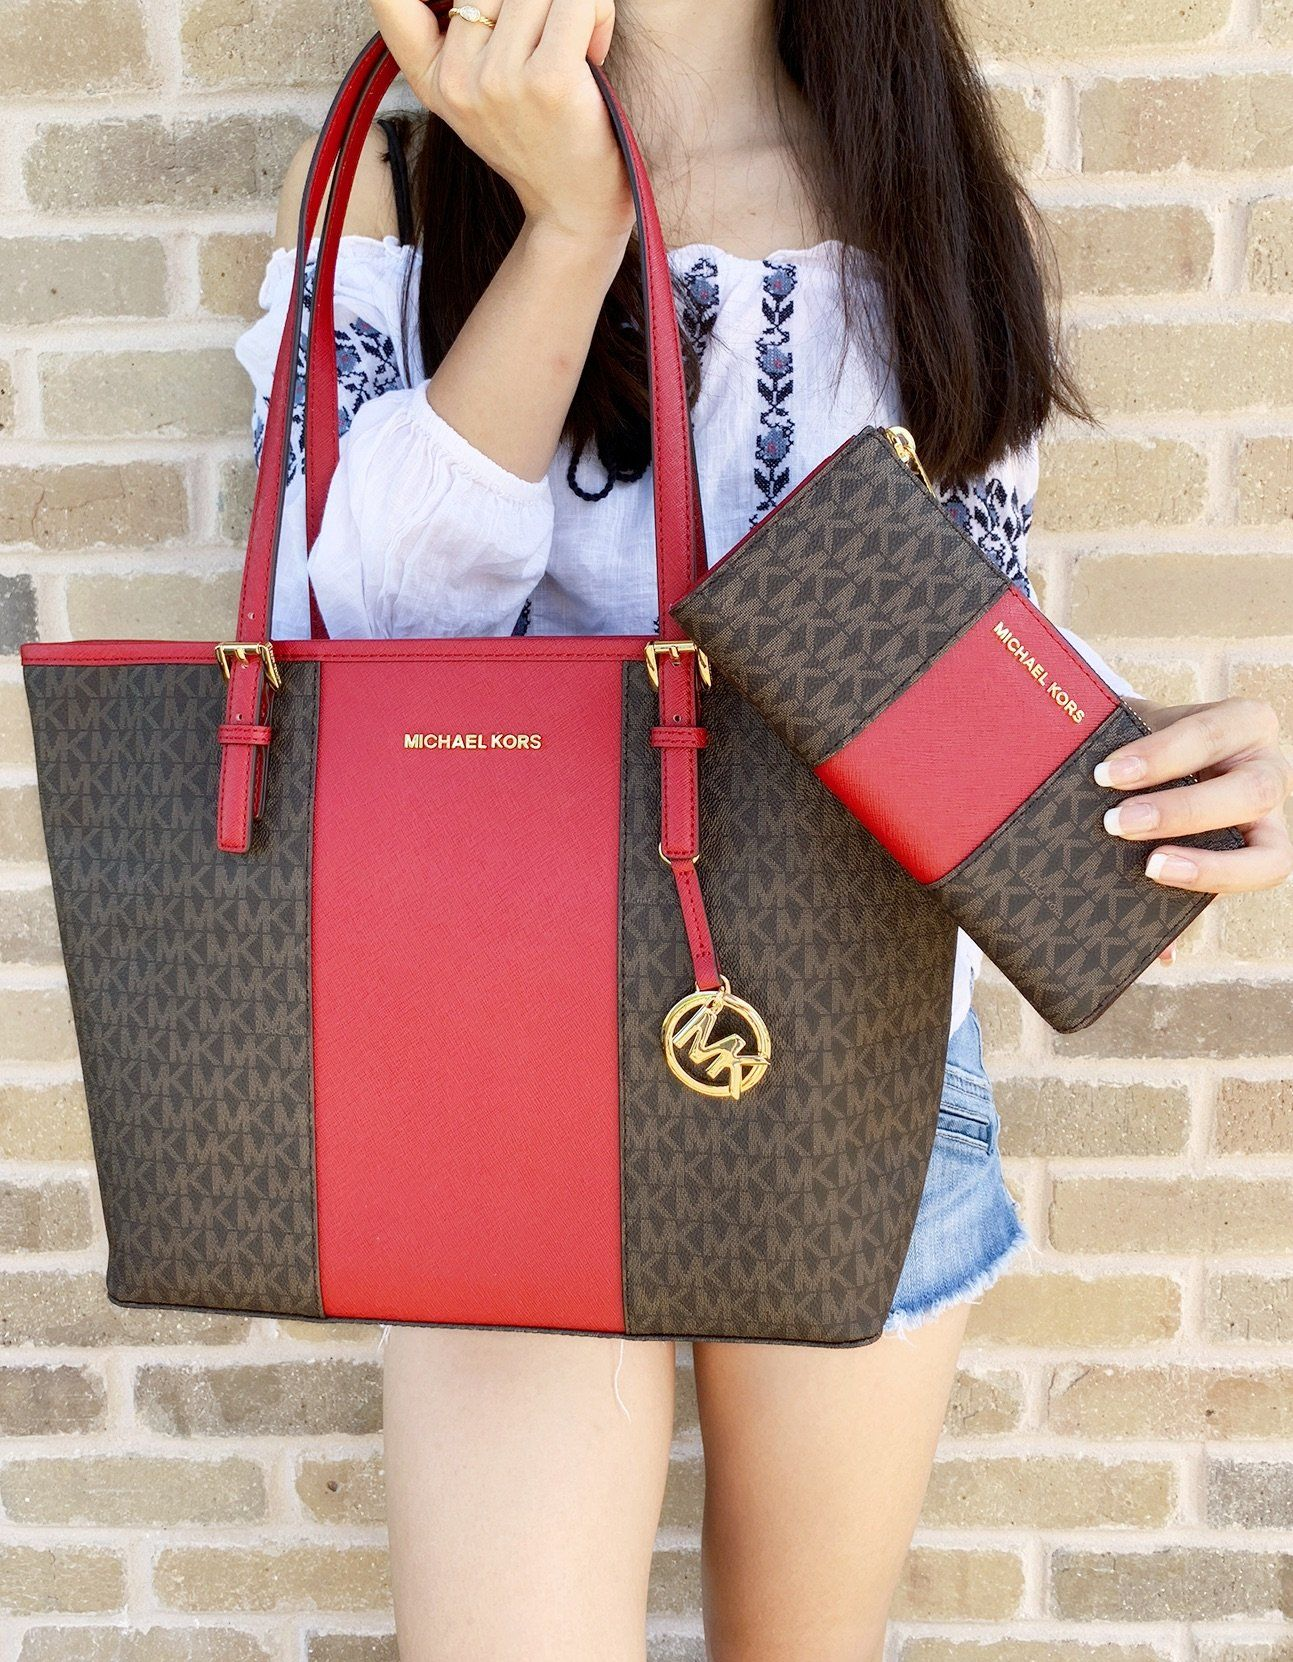 4988fafff8e925 Michael Kors Medium Carryall Tote Brown MK Signature Red Wallet SET #MK  #poshpackages #amazondeals #tradesycloset #ebay #ebayfashion #poshboss  #poshcloset ...